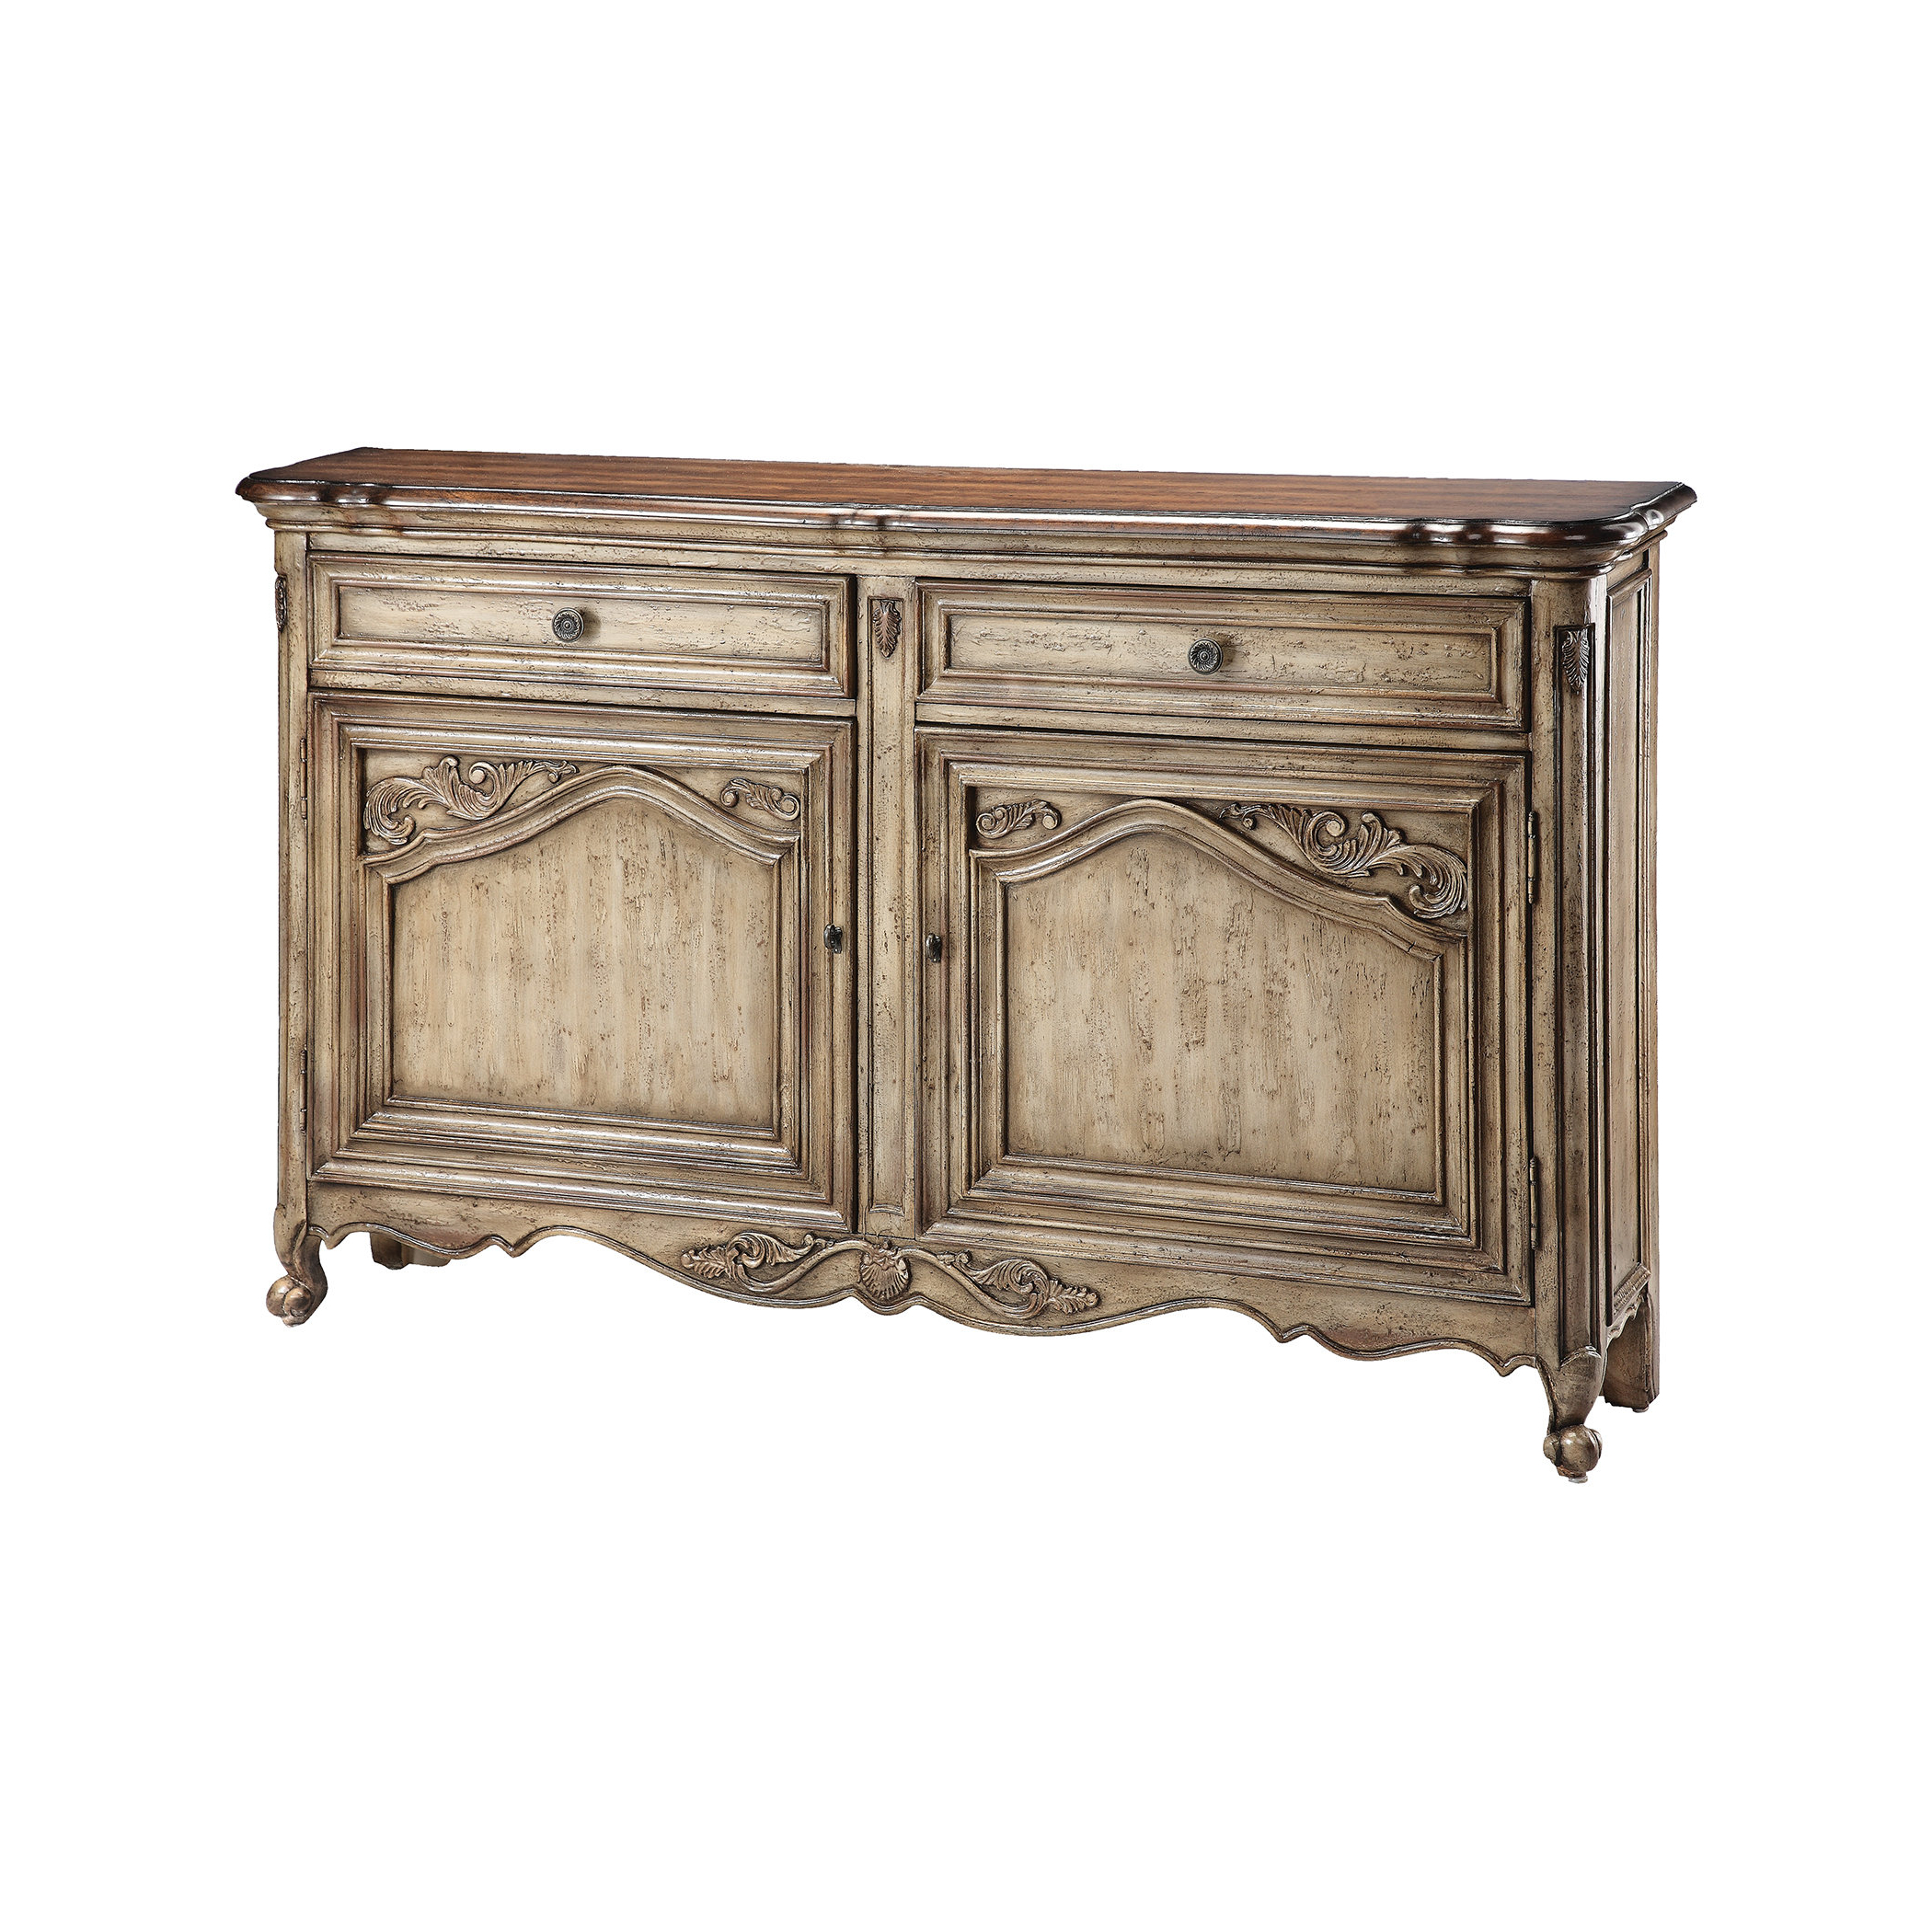 Dormer Sideboards For Most Current Dormer Sideboard (Gallery 1 of 20)